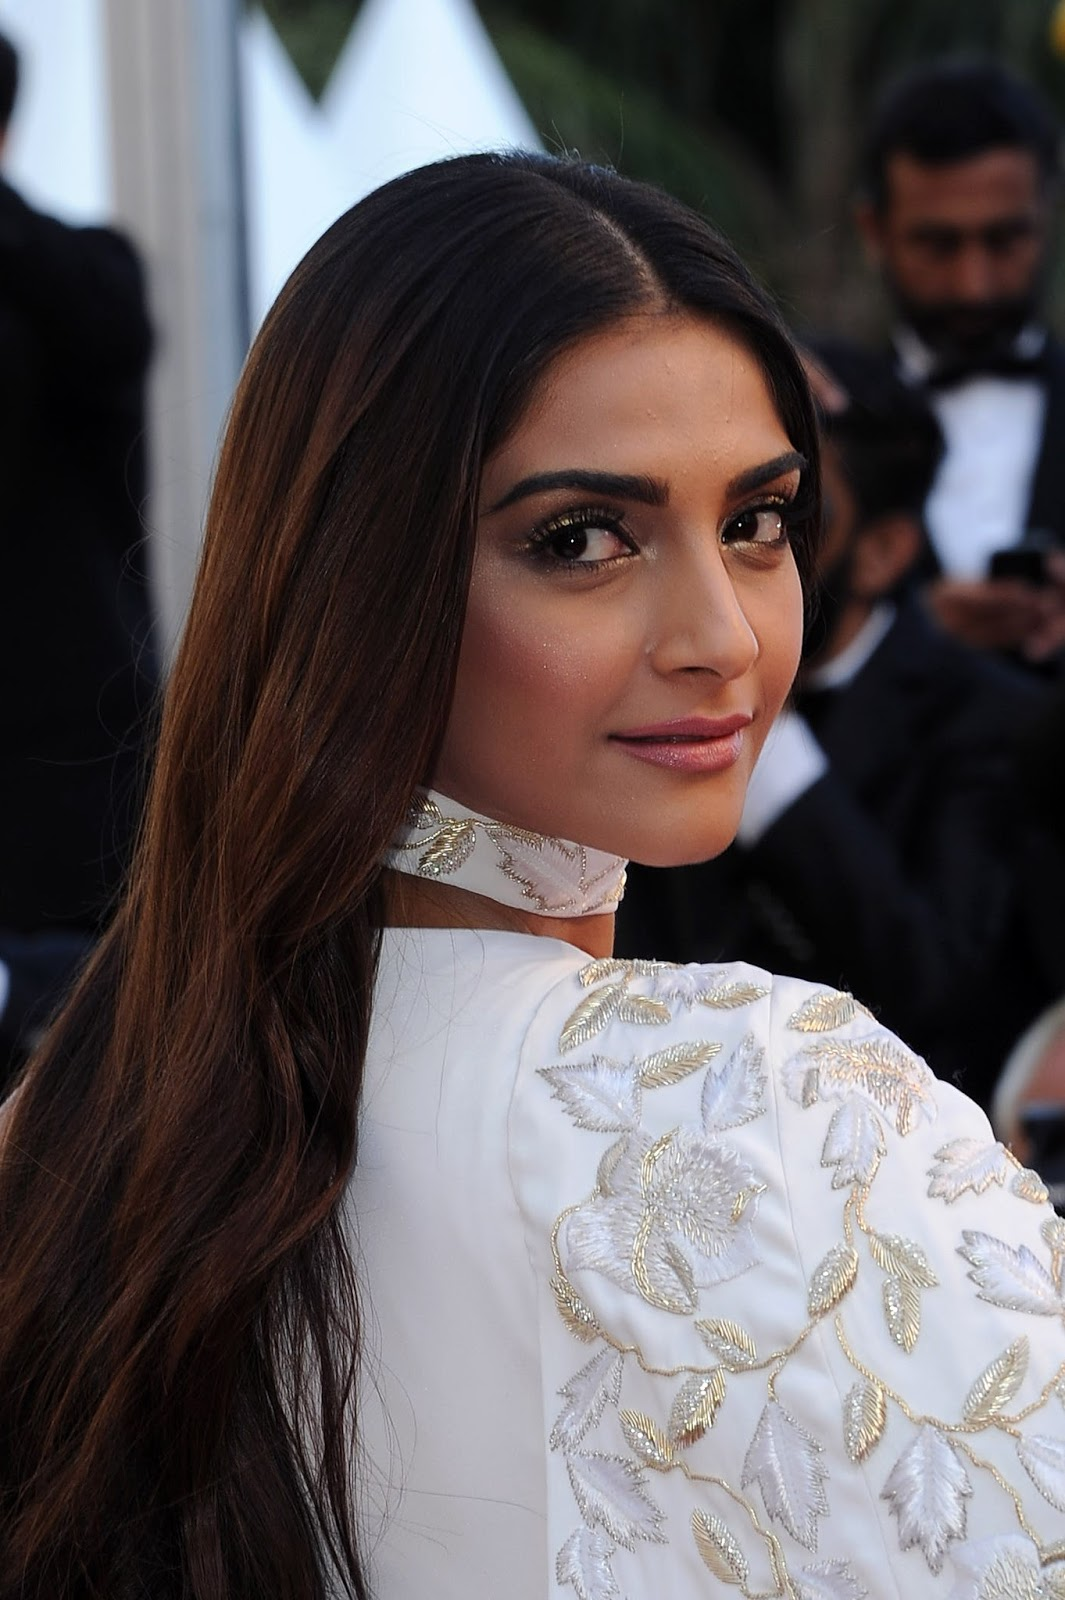 Sonam Kapoor Looks Gorgeous In White Dress As She Attends -1517